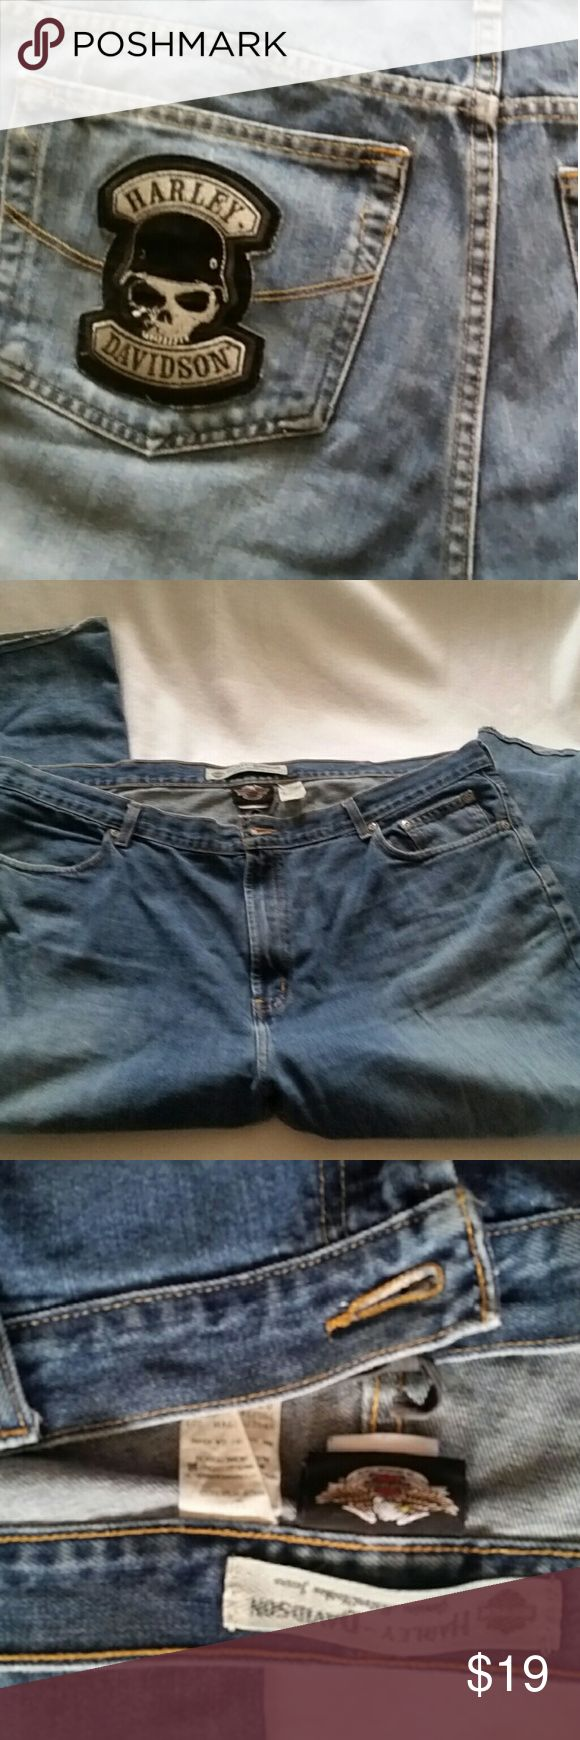 Harley Davidson jeans Samcro distressed Skeleton Biker jeans in pre-owned condition fraying on hems distressed in color also.  see pictures.  great jeans for biker dude or dudette. Skeleton head Harley Davidson and Samcro patches. the waist is about 46 and inseam is about 28  - if reconstructing em allow at least 3 inches to remove distress.  taq says size 16/32  it is definitely not a 32 so dont let picture fool you. : ) Harley-Davidson Jeans Bootcut